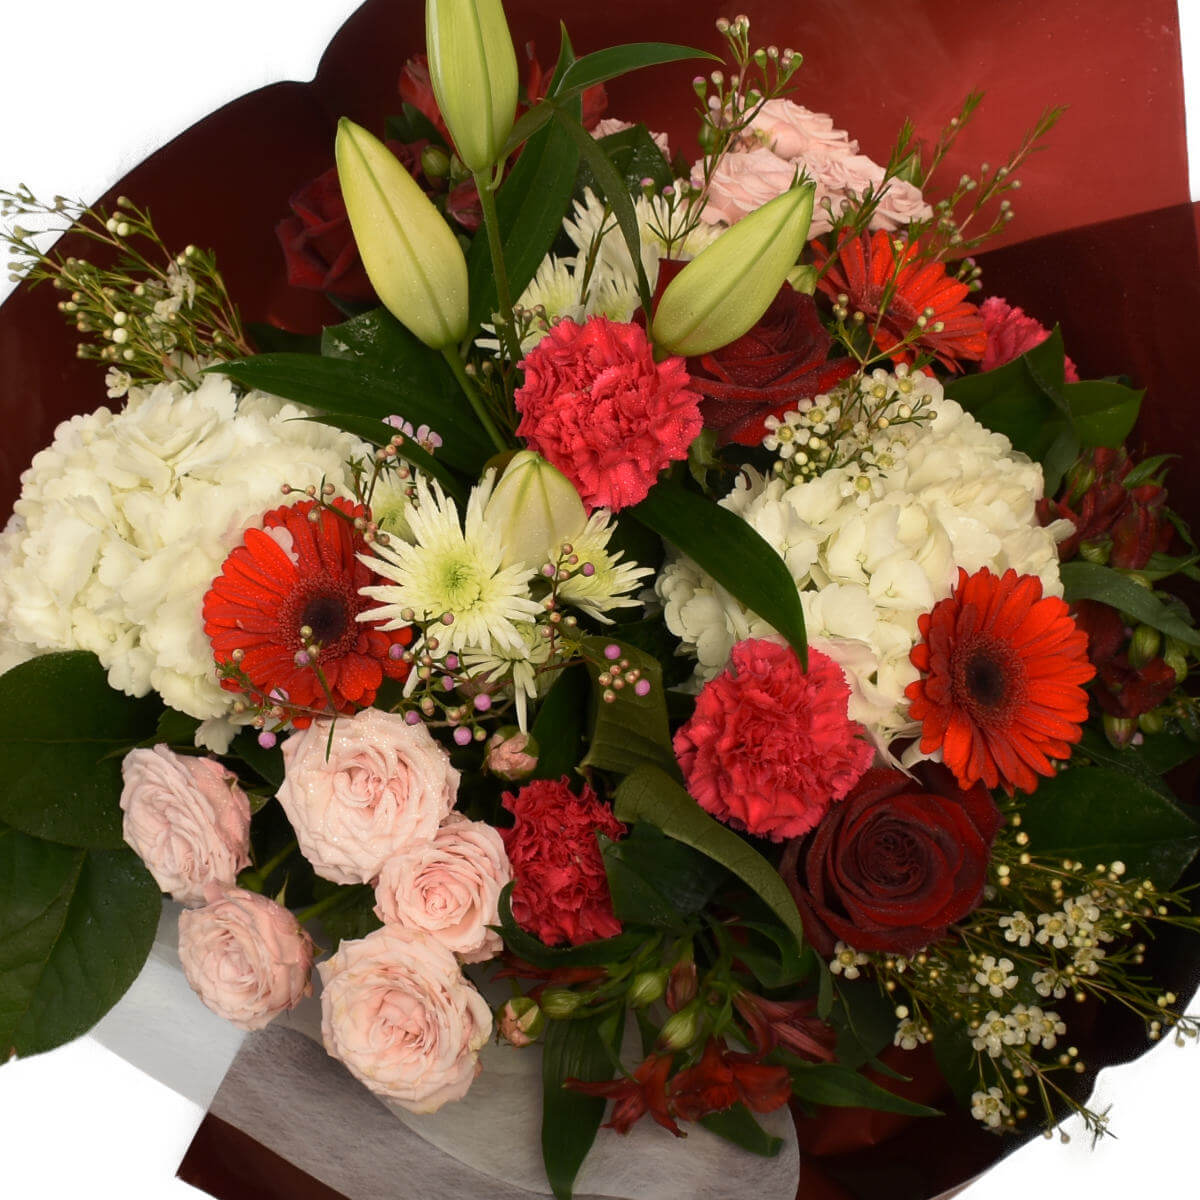 Happy Birthday Bouquet of Flowers | Vancouver Adele Rae Florist